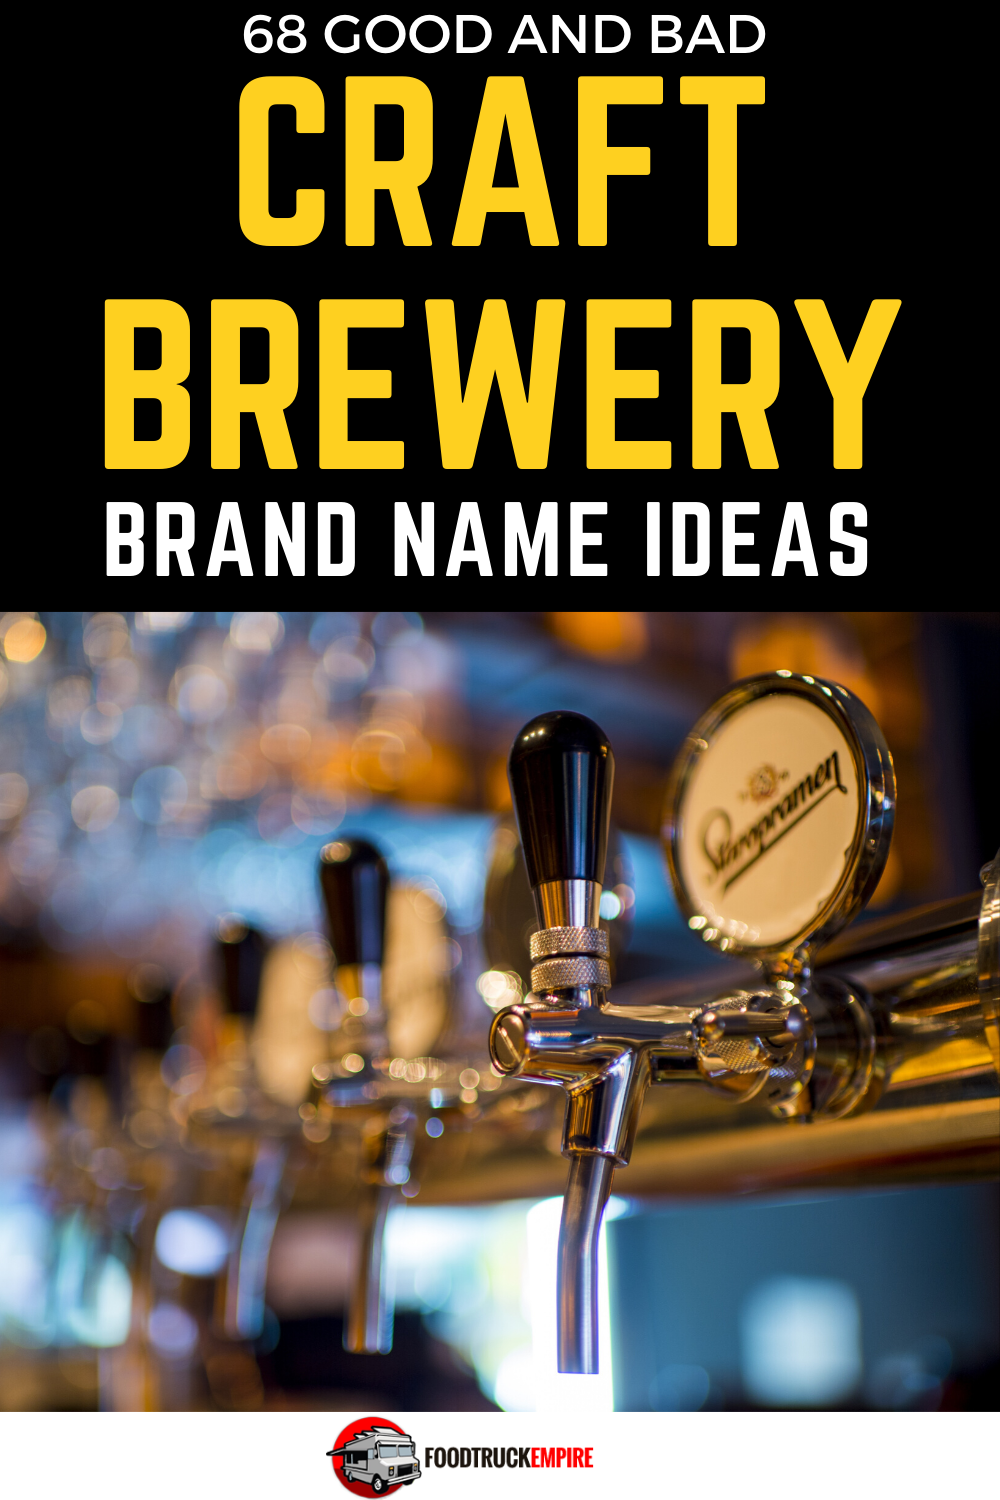 68 Good and Brad Craft Brewery Name Ideas